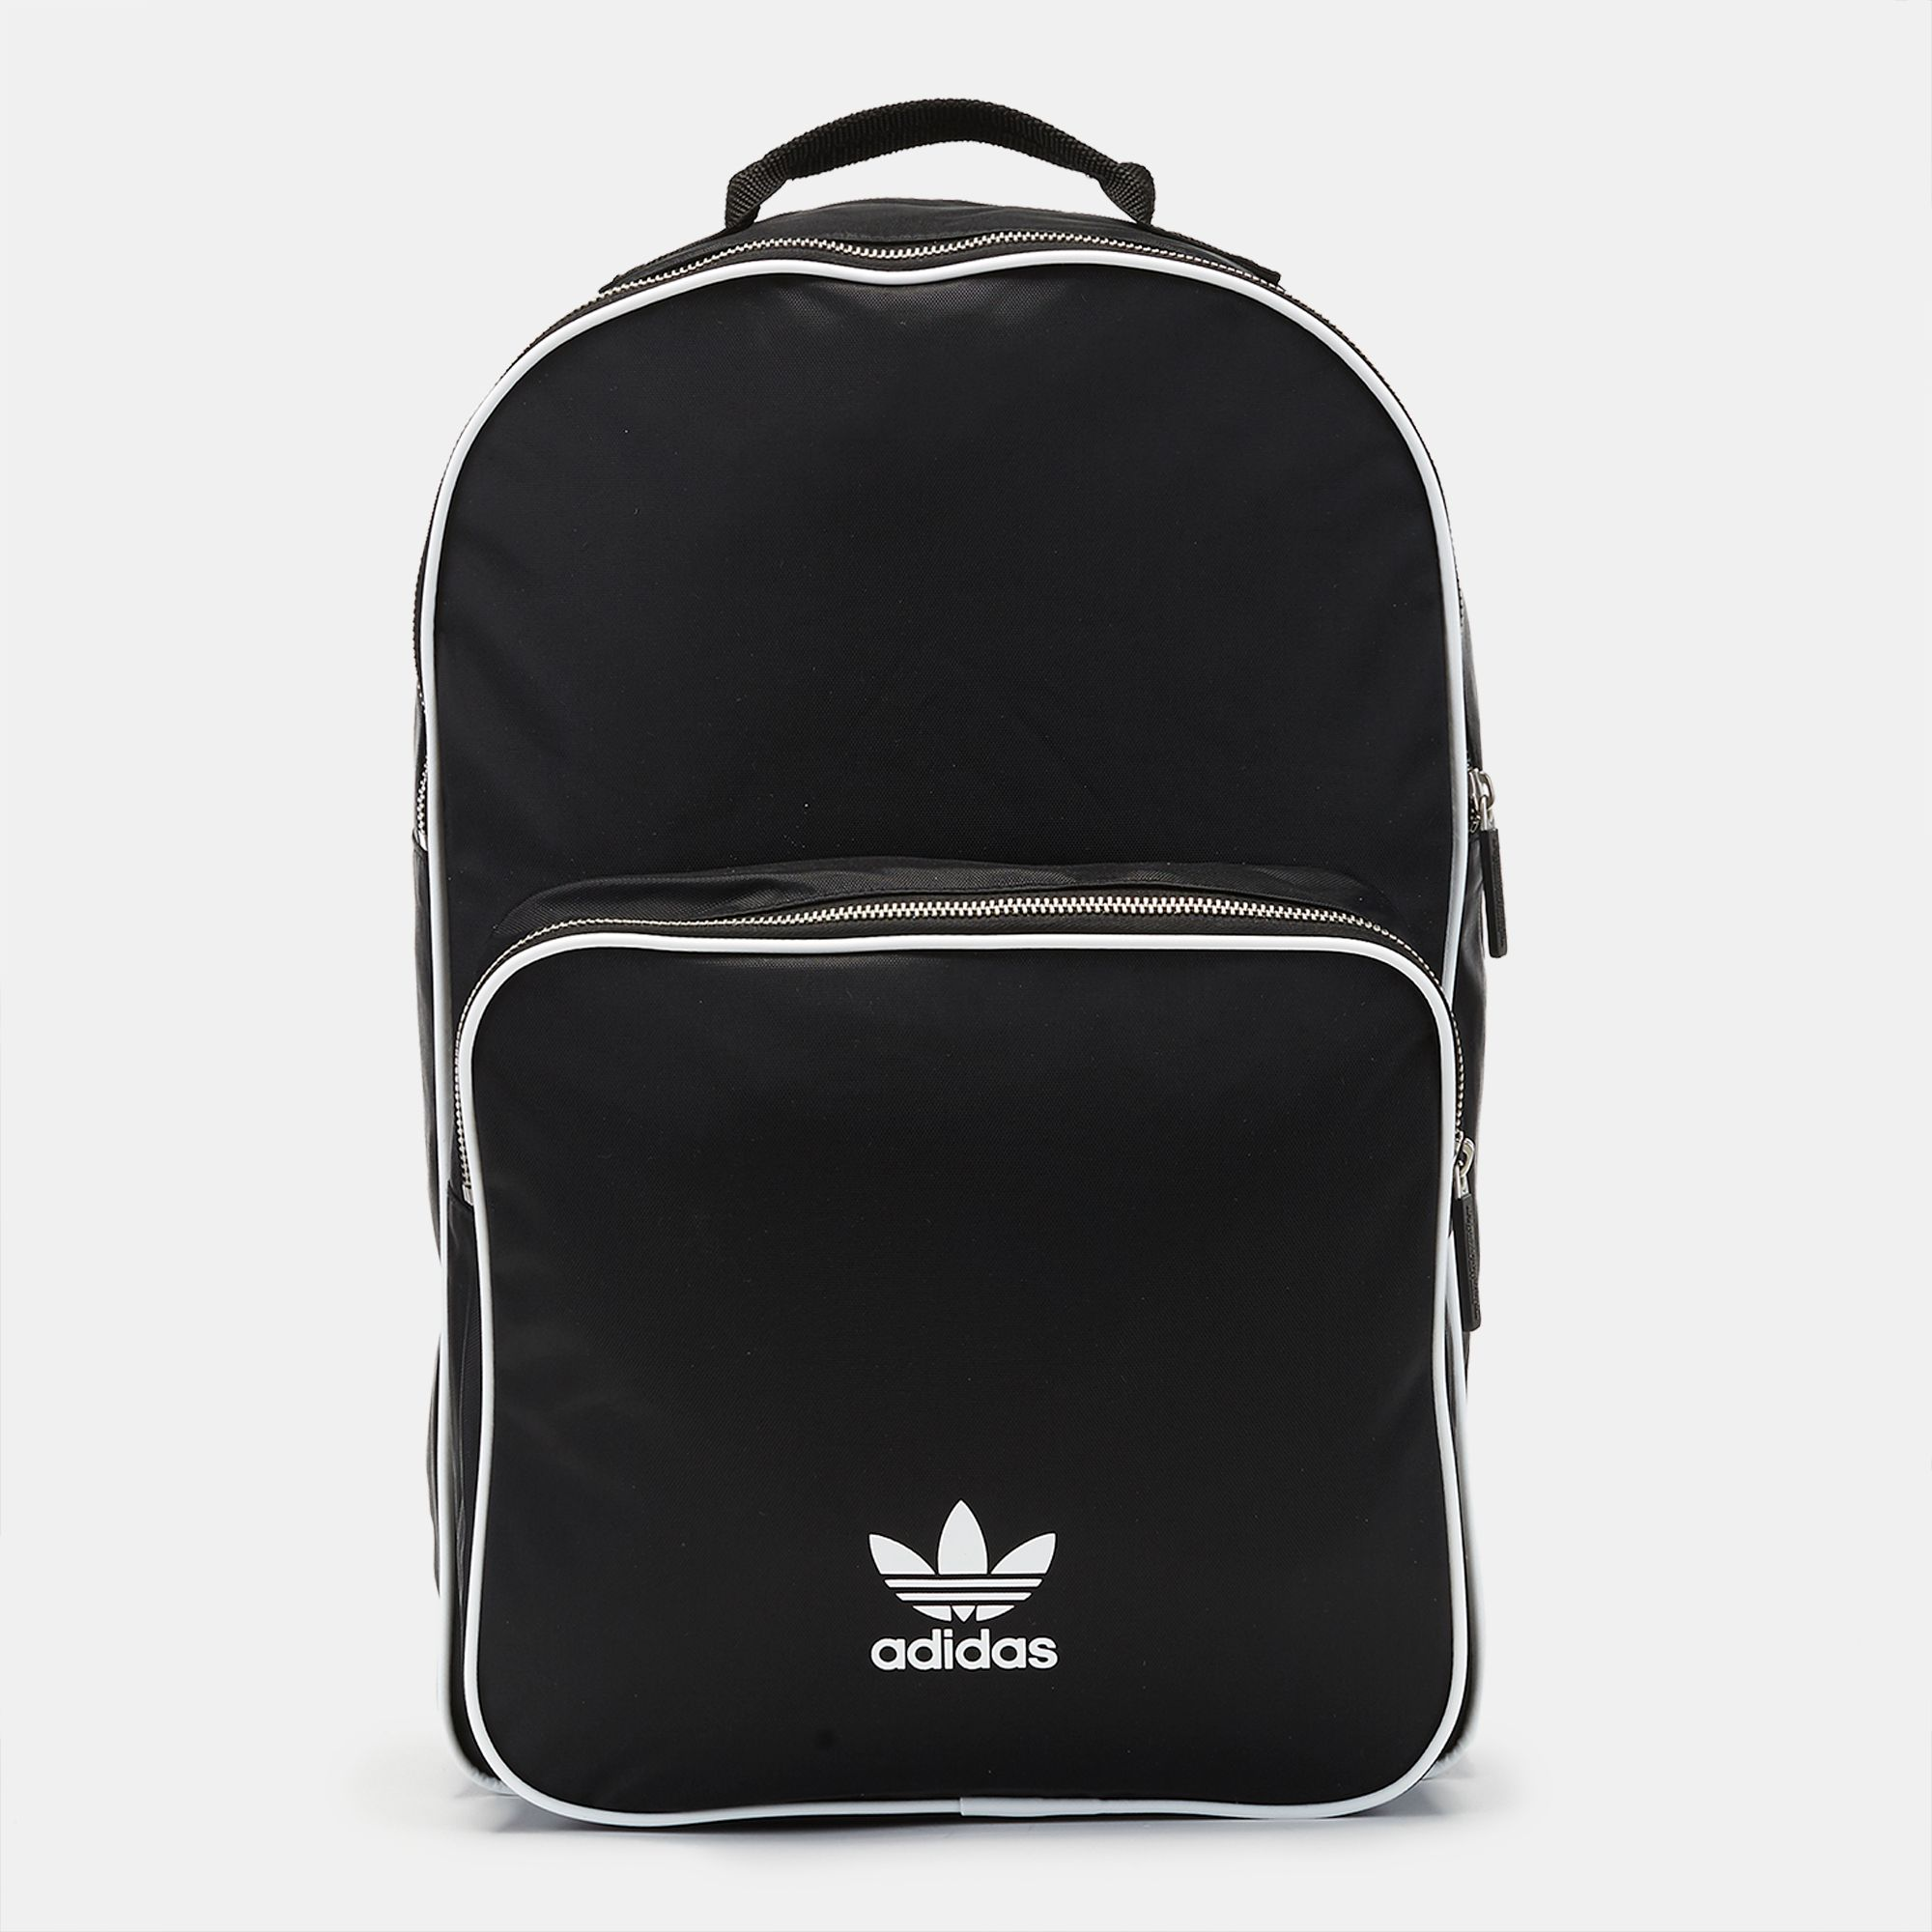 011a6b2c0f2b adidas Originals Classic Backpack